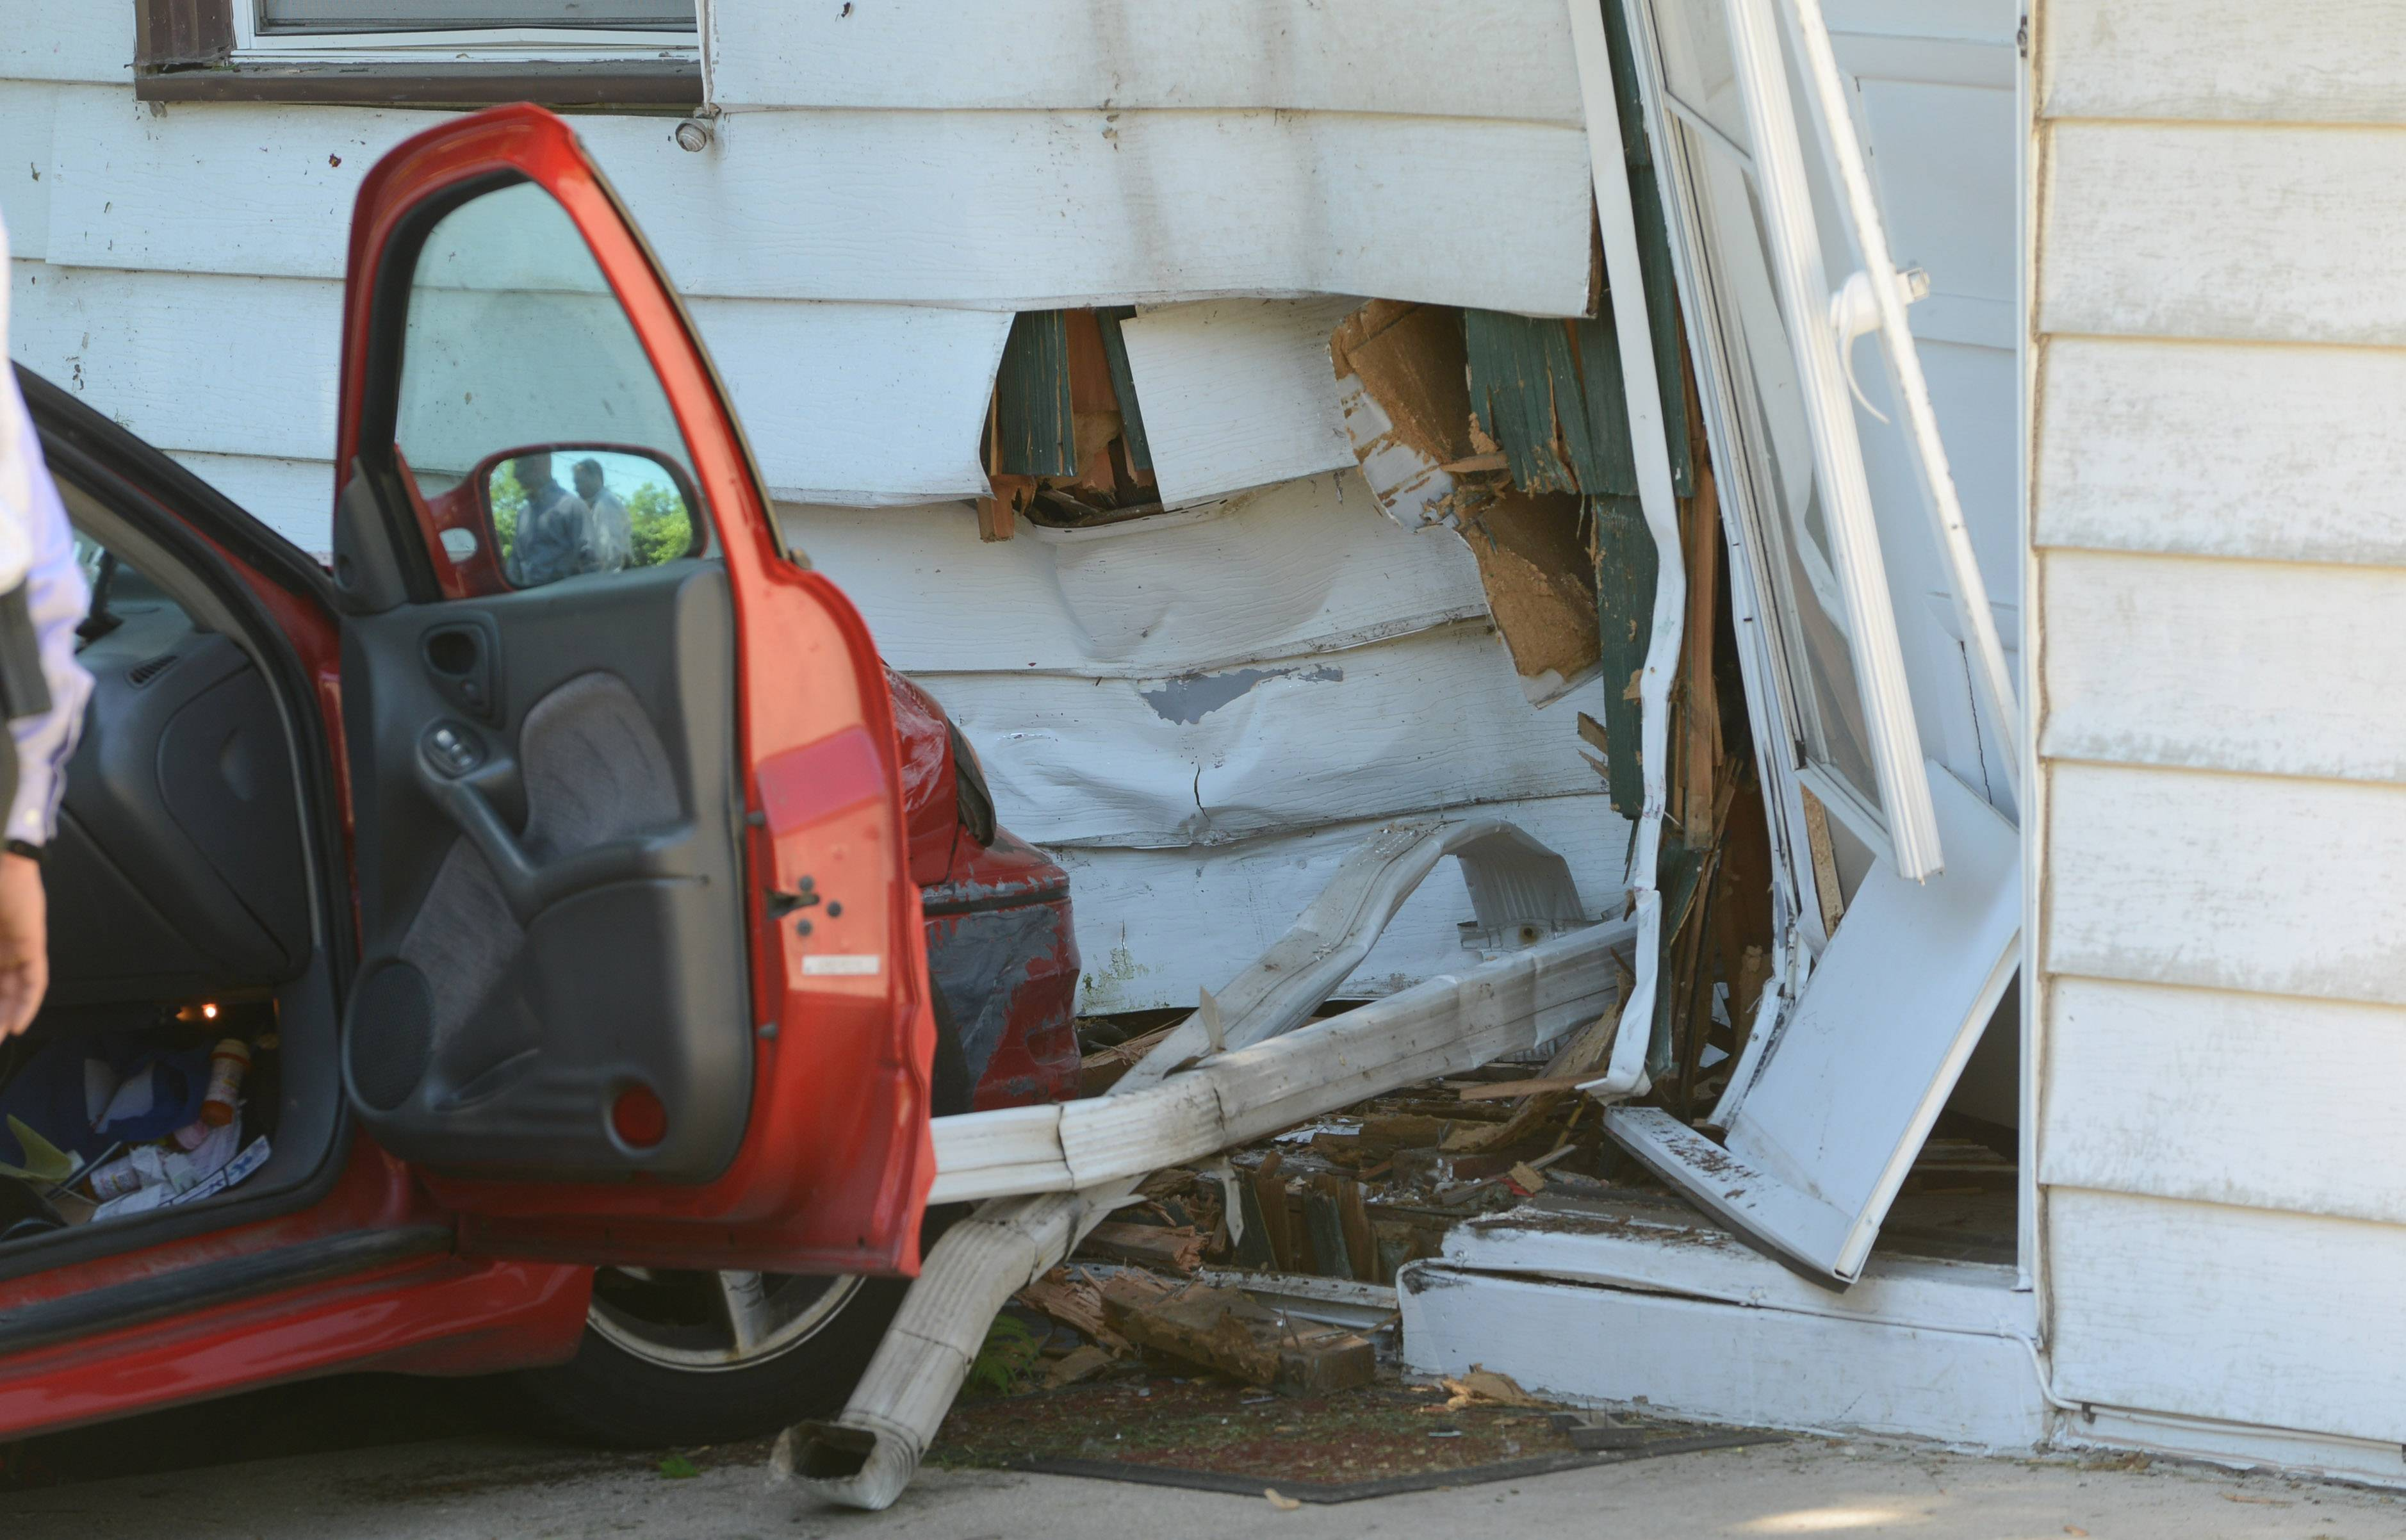 A house on the 1100 block of Diamond Lake Road in Mundelein was damaged when a car crashed into it Tuesday morning.